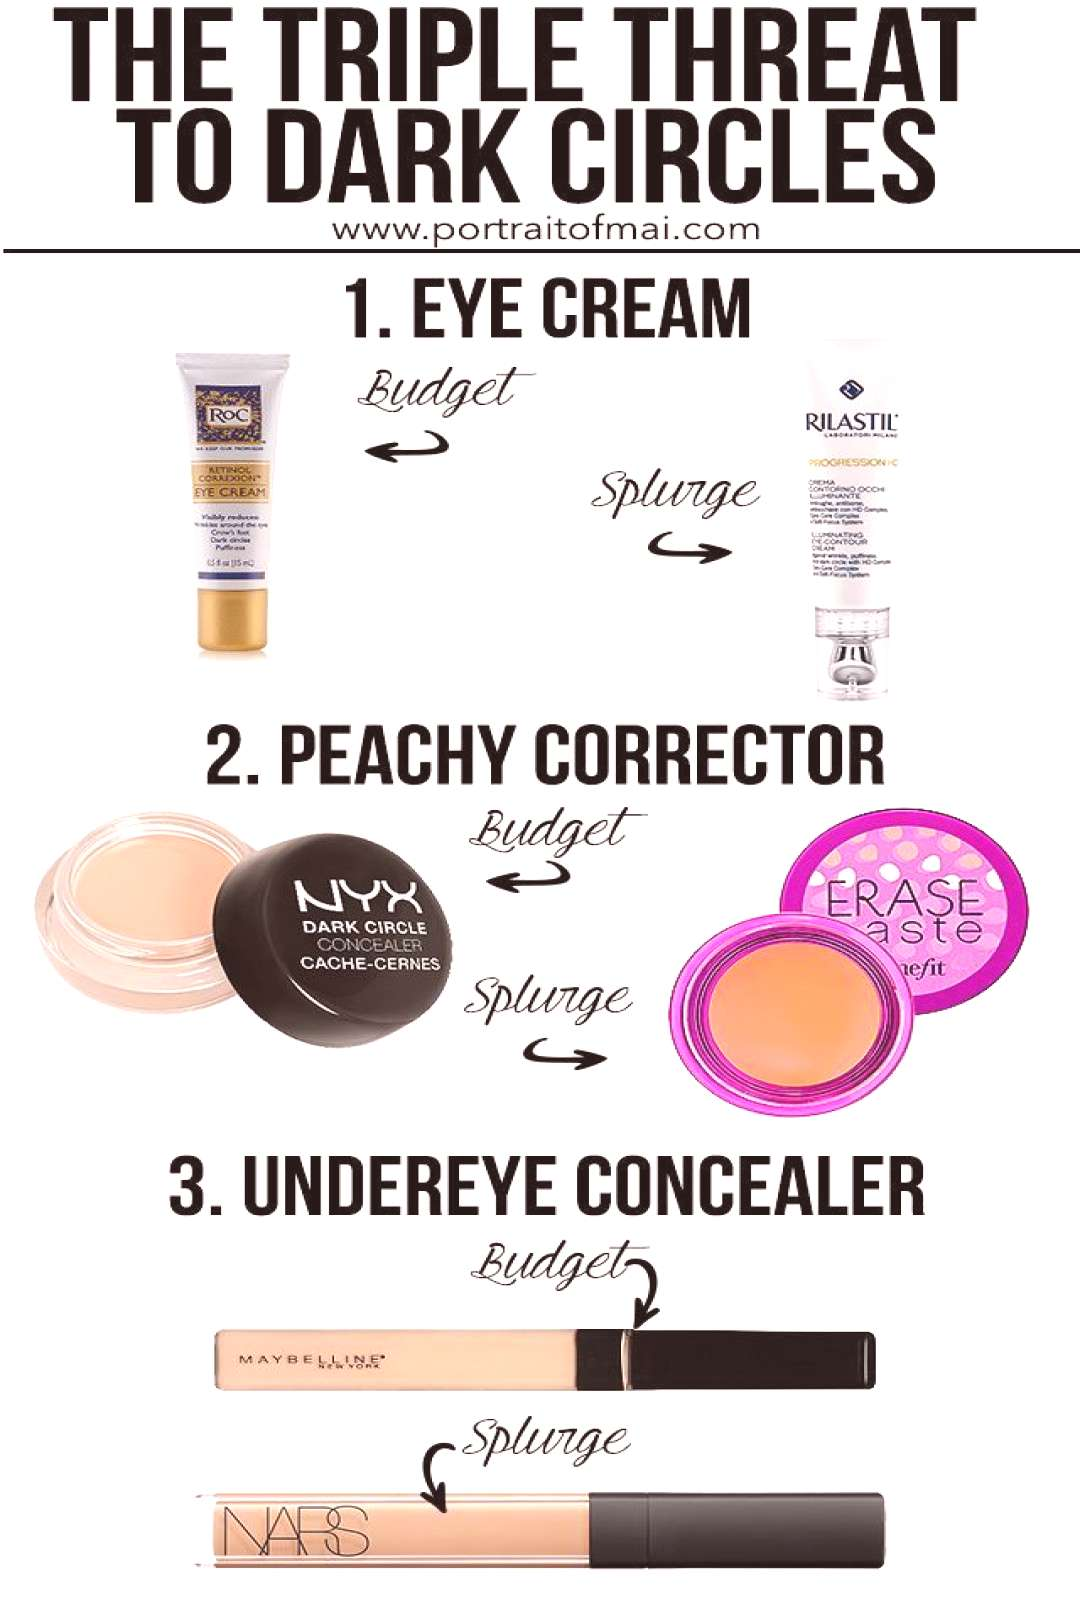 The Triple Threat to Tackling Dark Circles - The Triple Threat to Tackling Dark Circles -